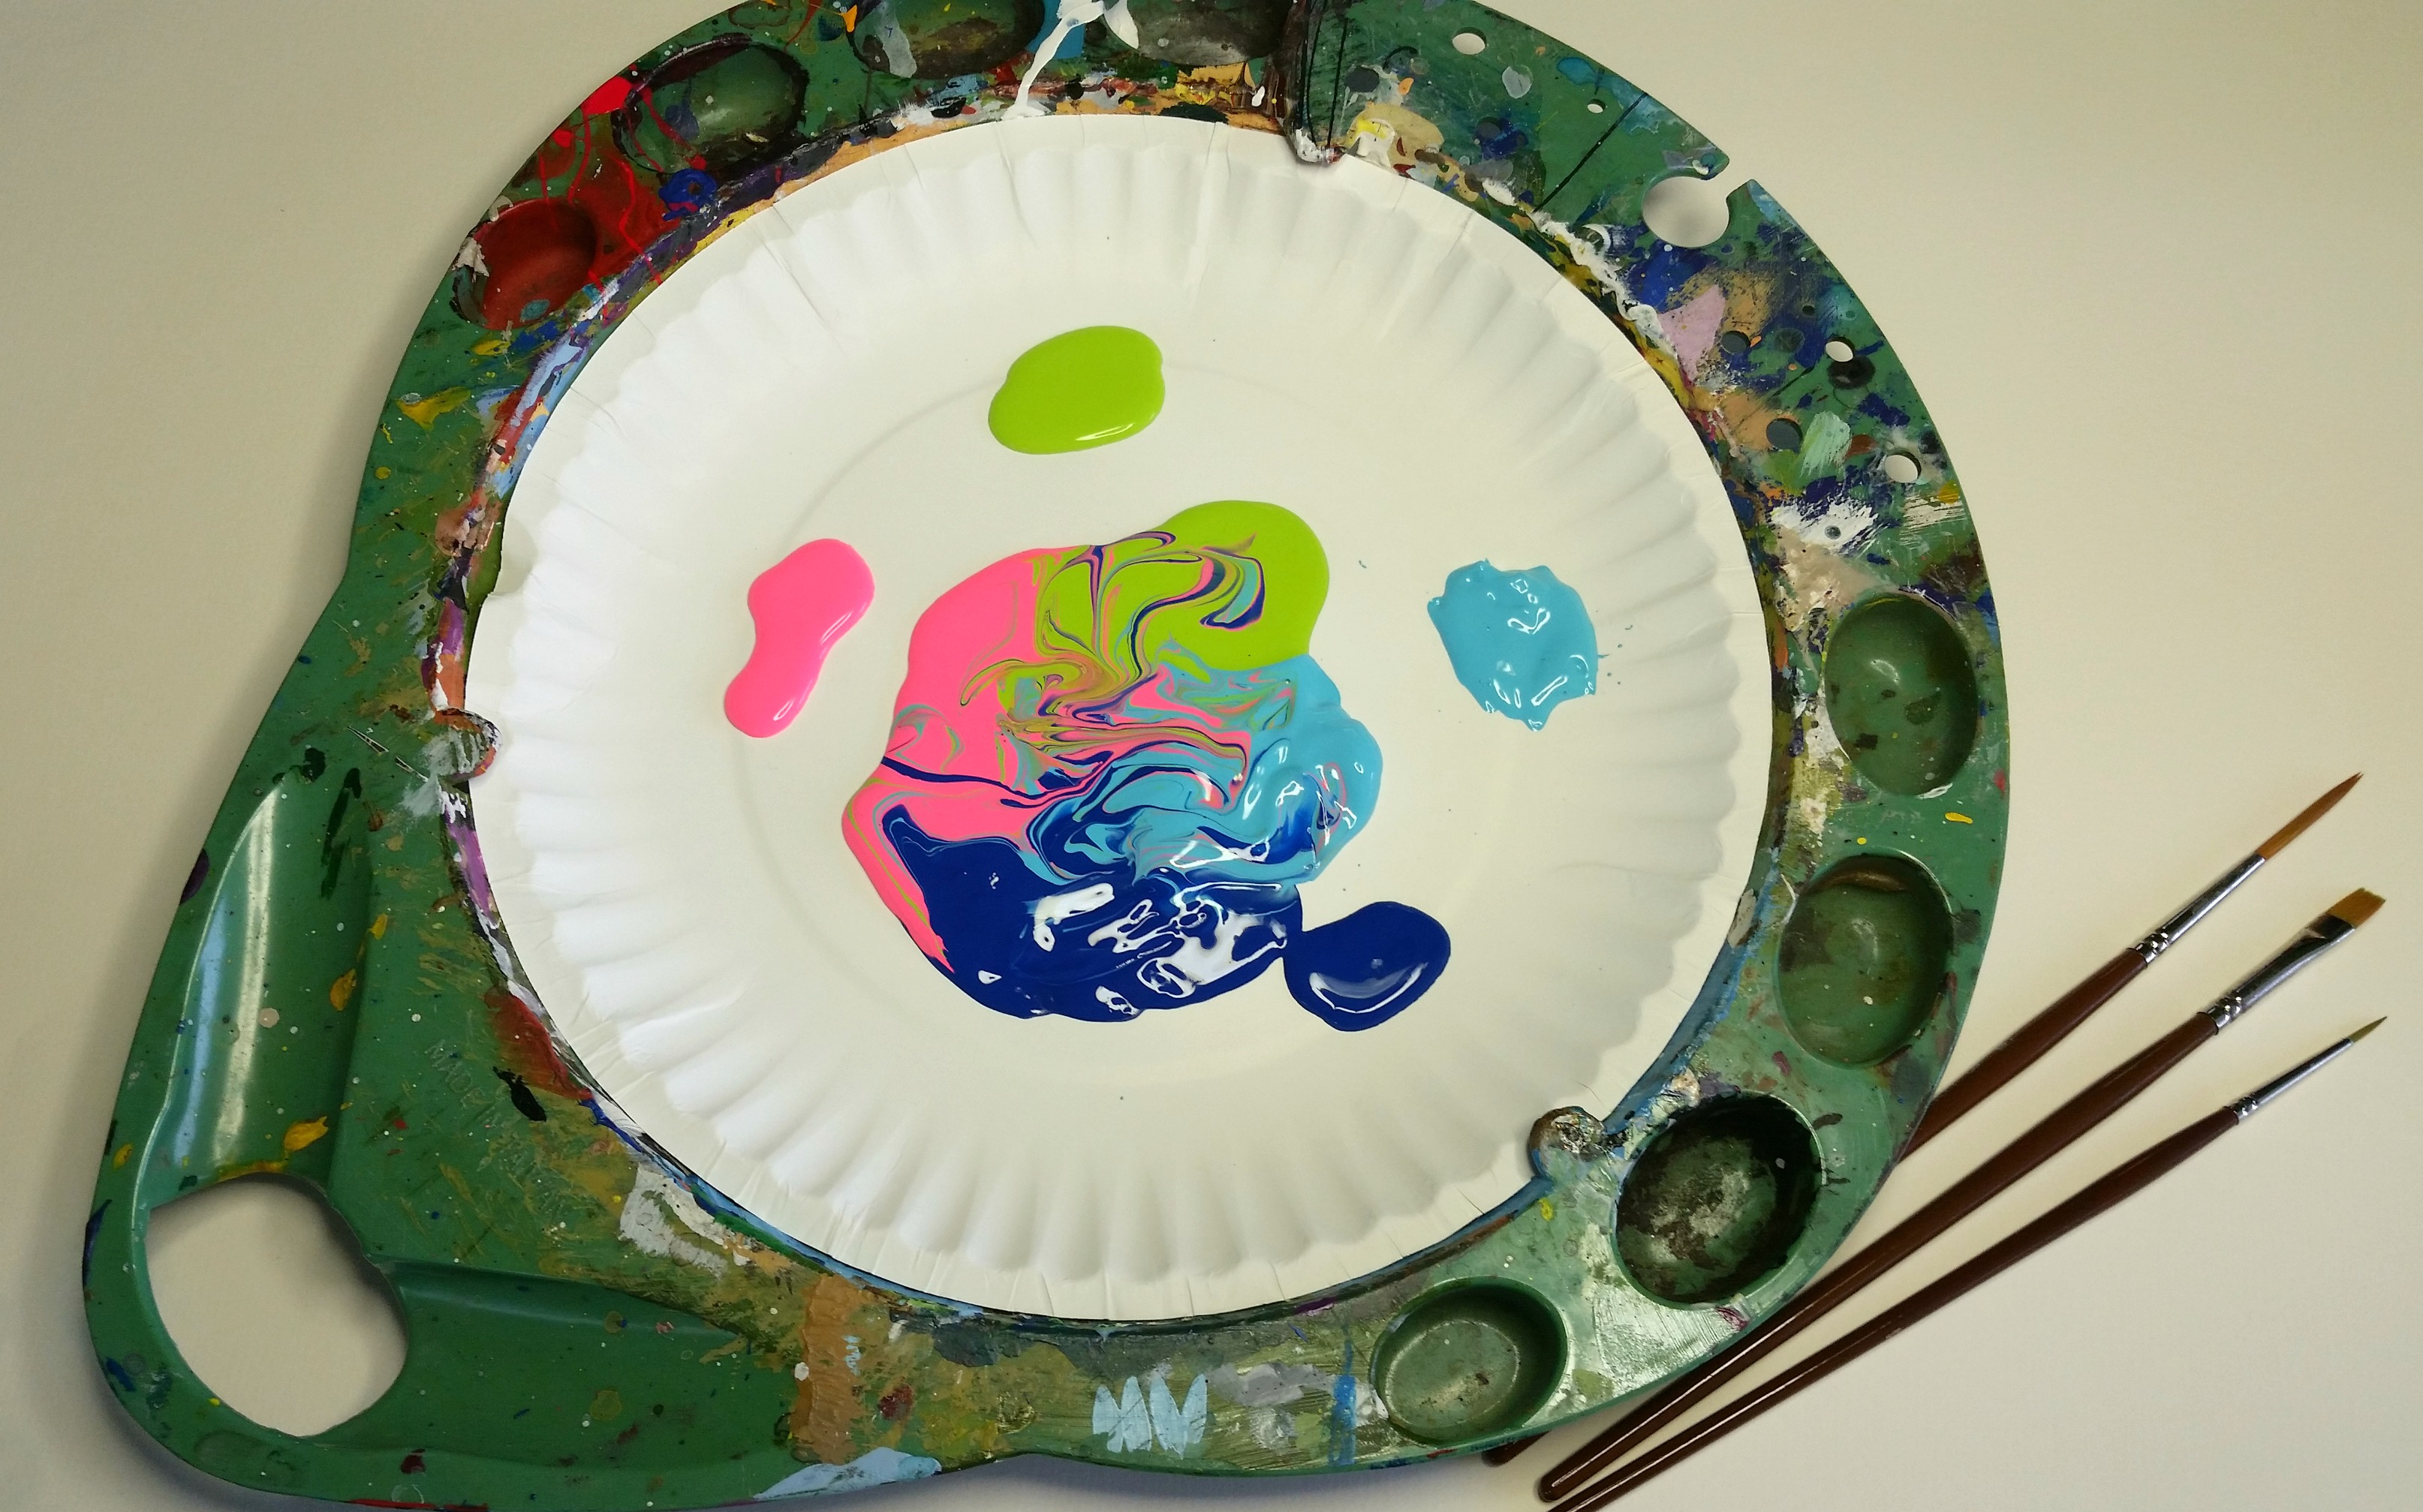 FolkArt One Stroke Palette with colorful paint on it